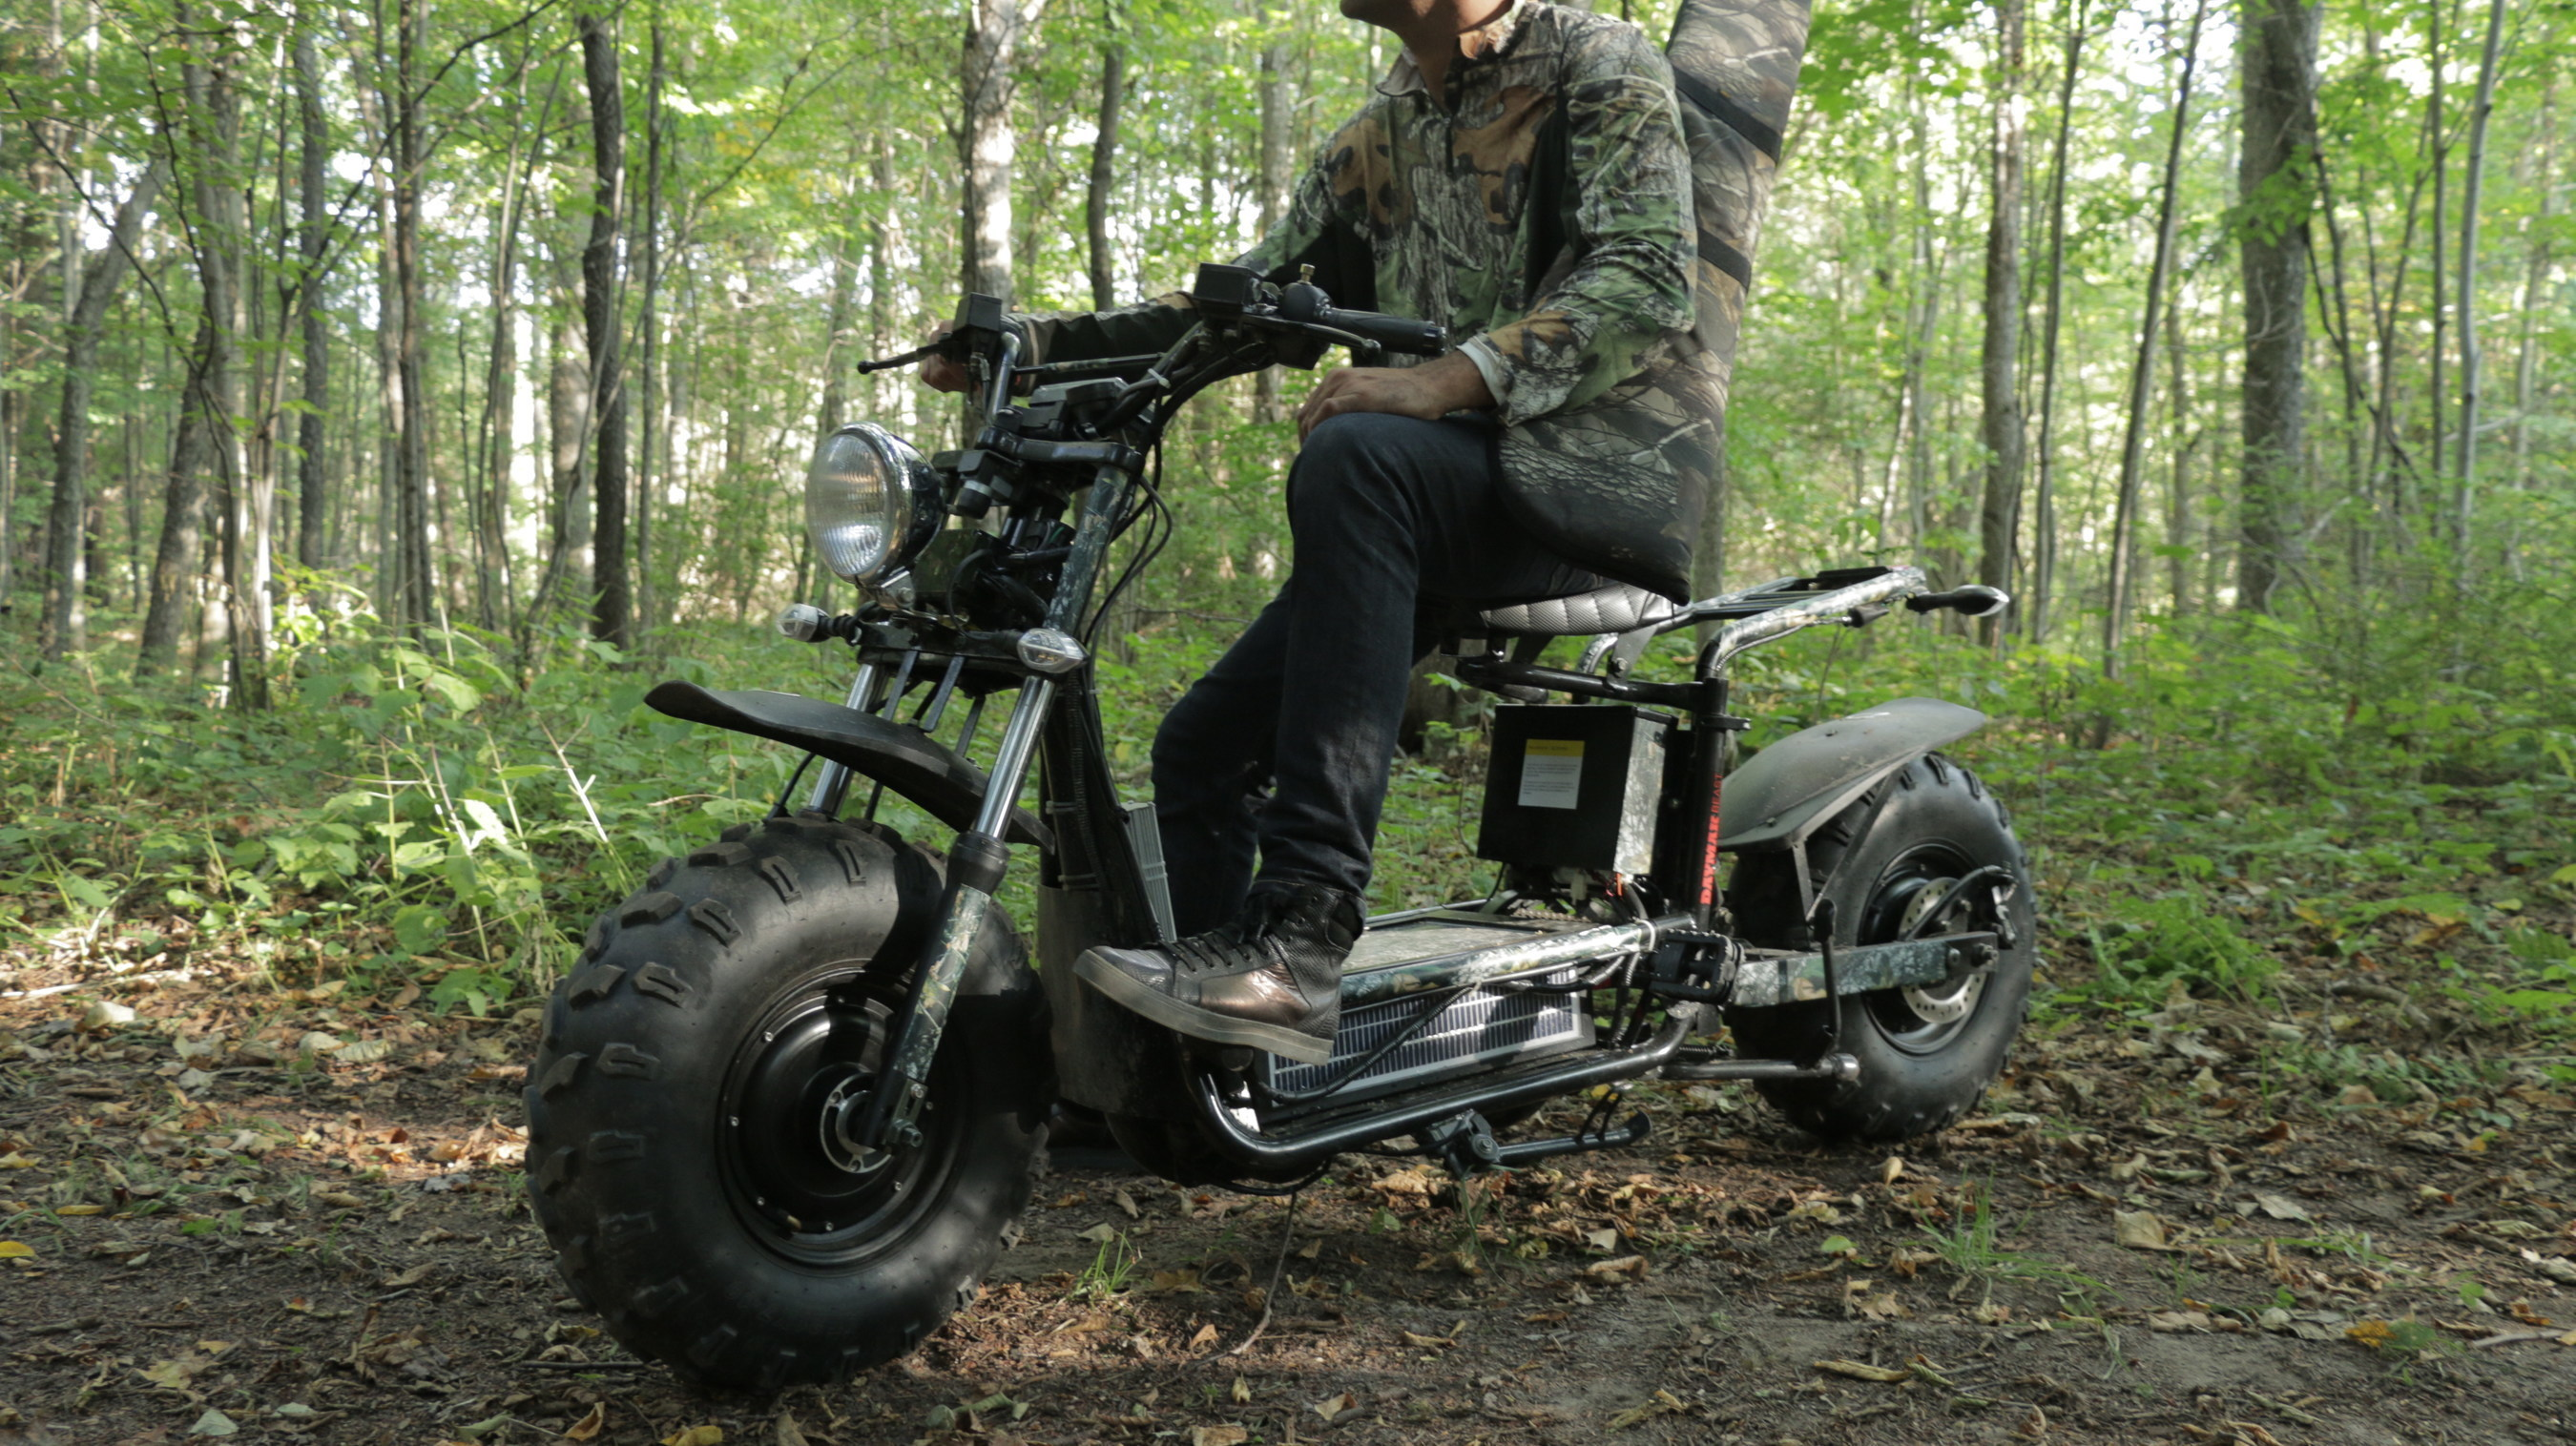 Daymak's The Beast - an Off-Road Scooter with Fat Tires and Solar Charging